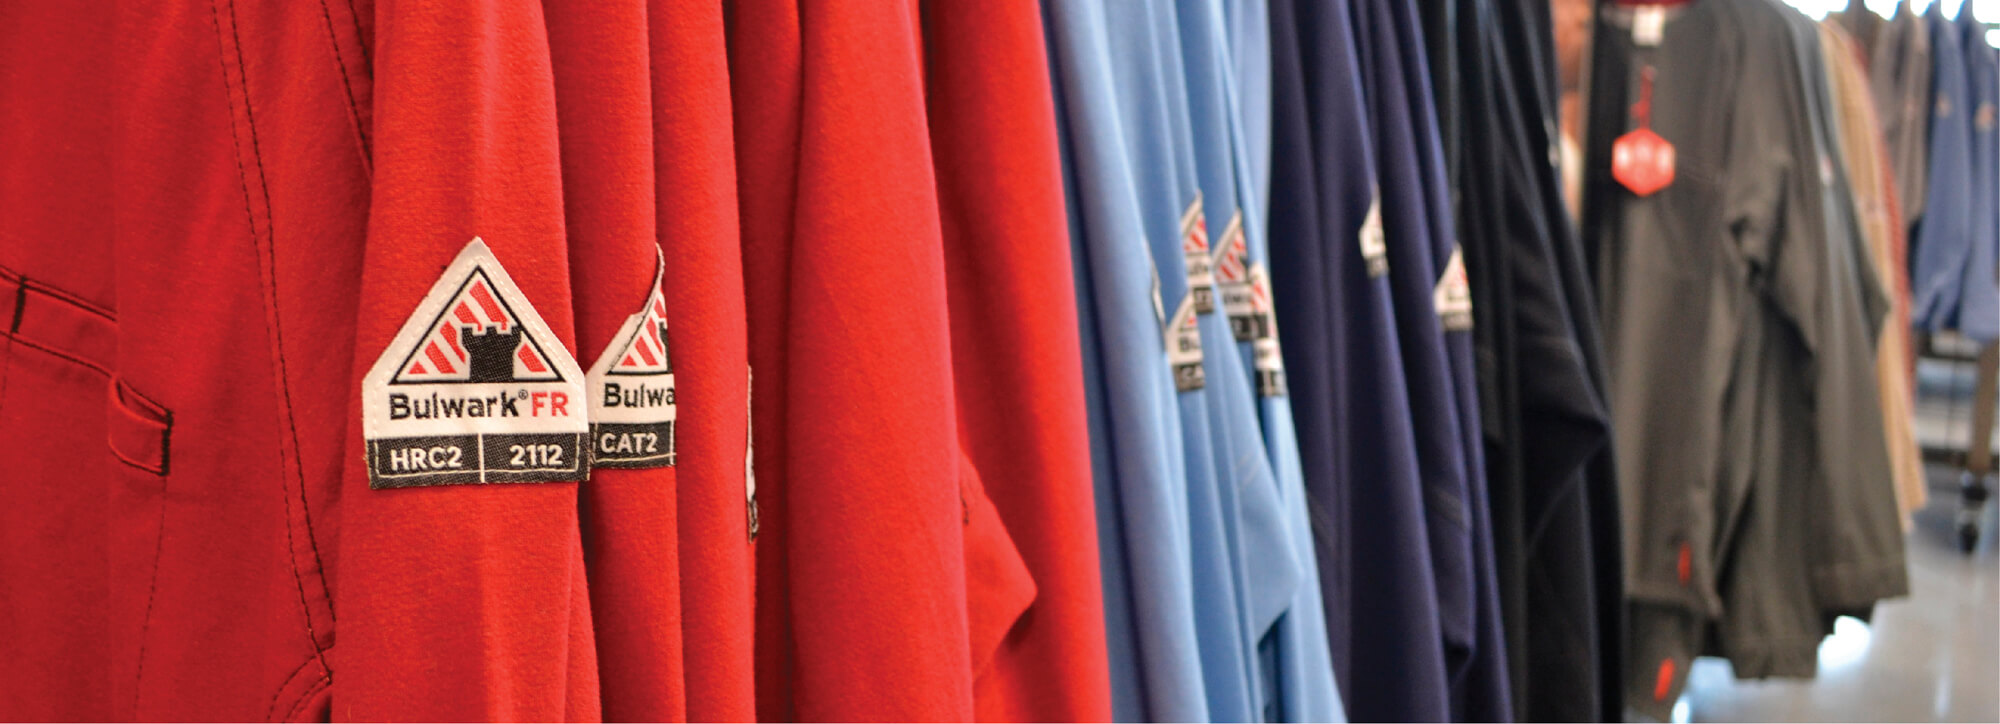 Fr clothing stores